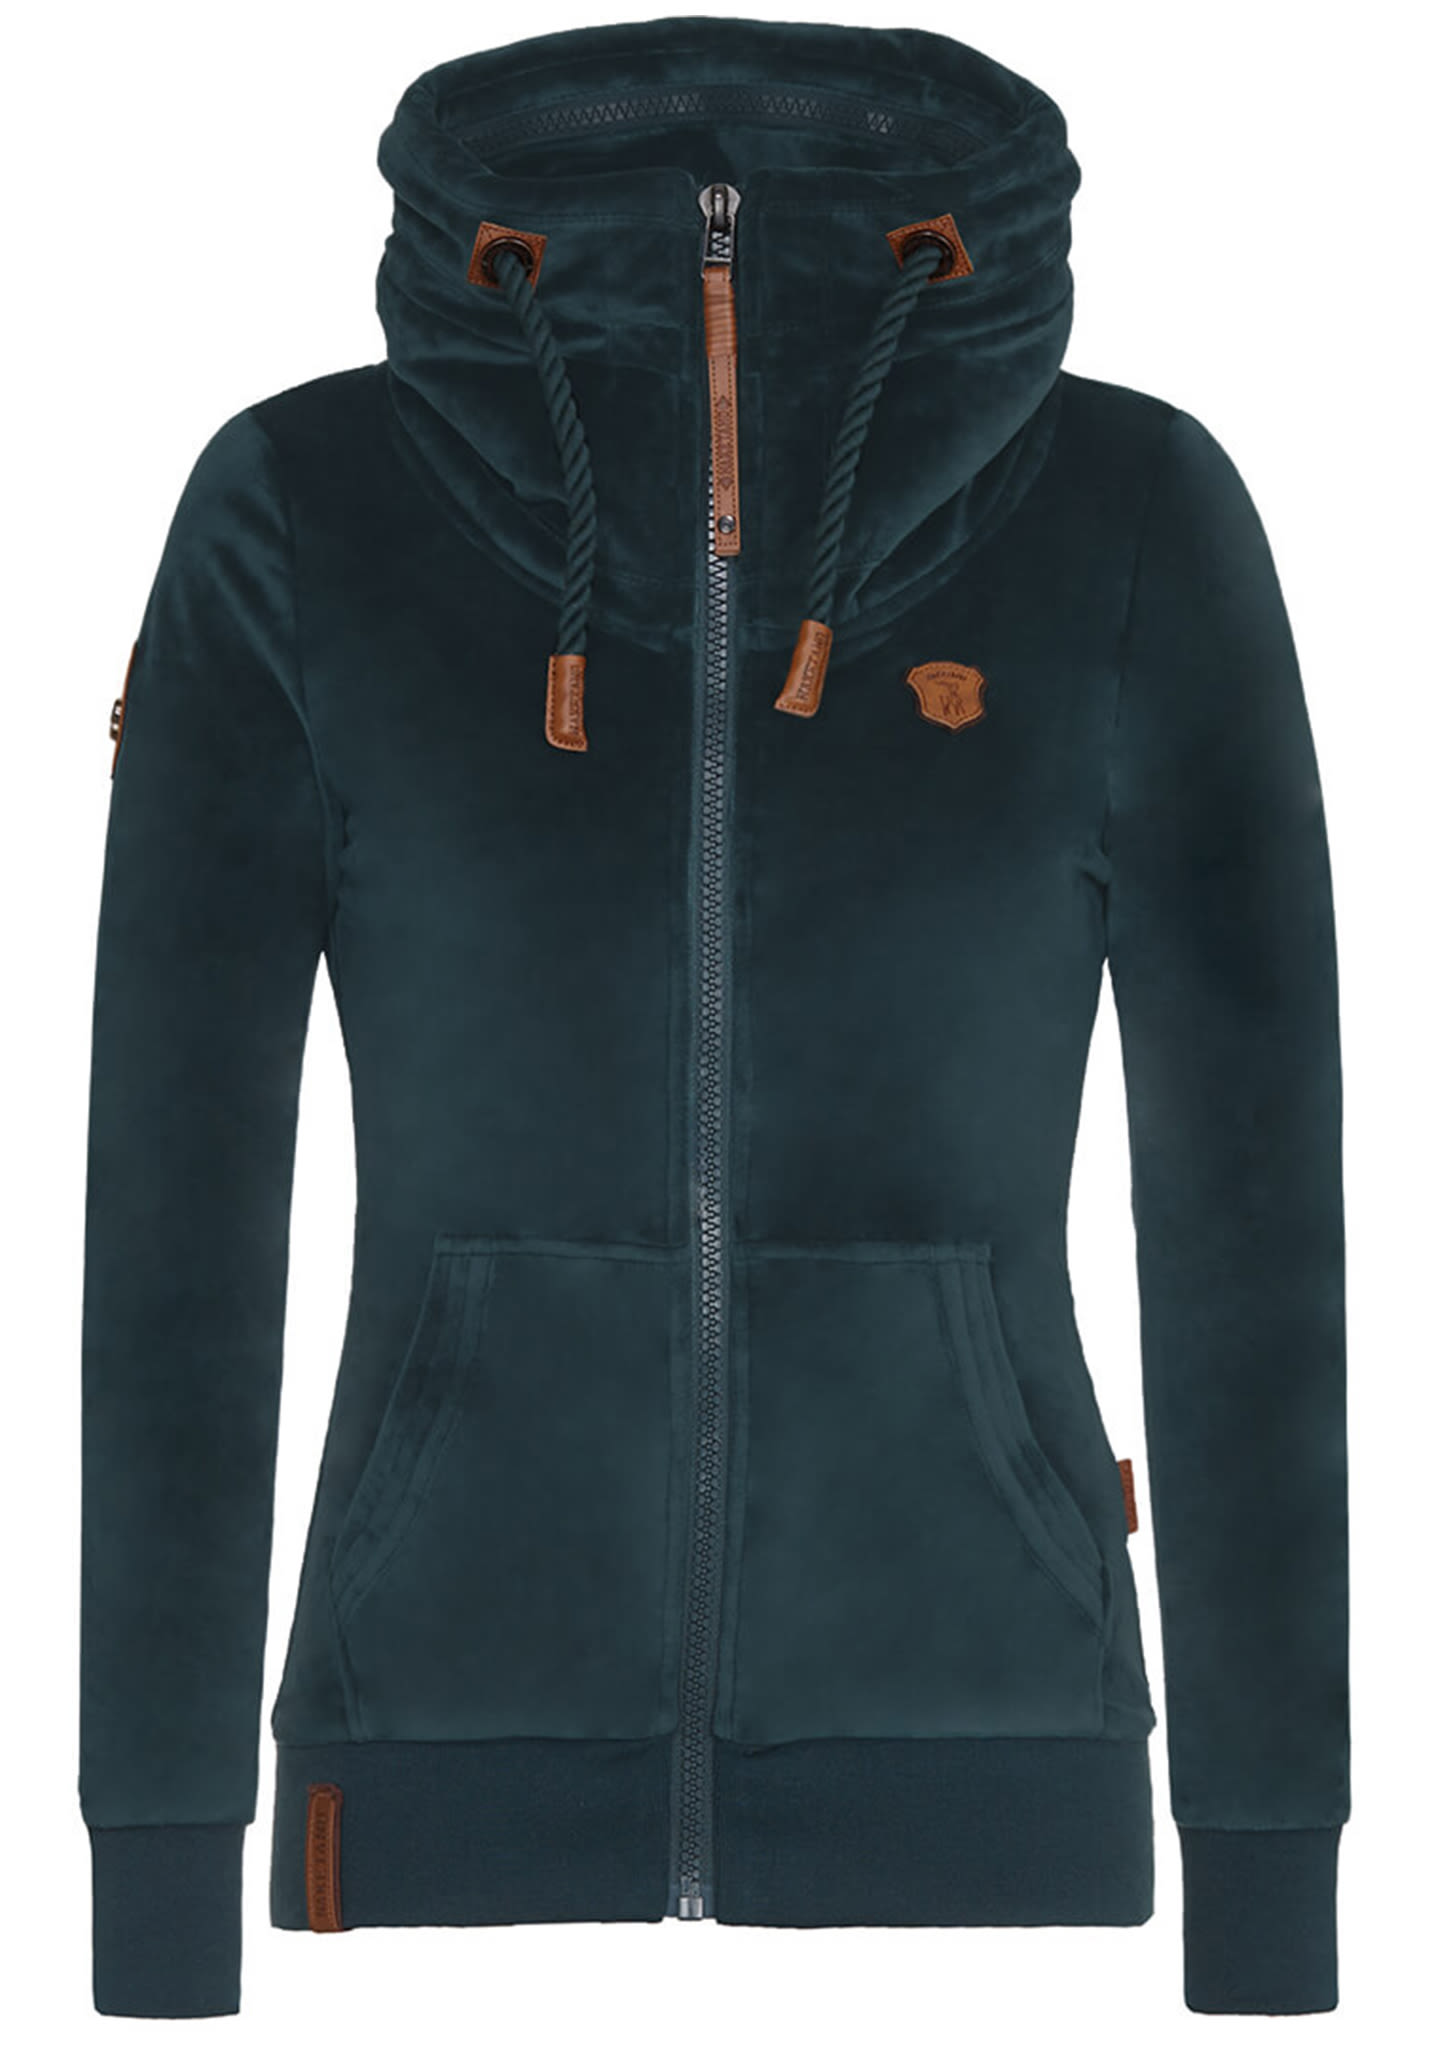 naketano sweatjacke damen xl grün